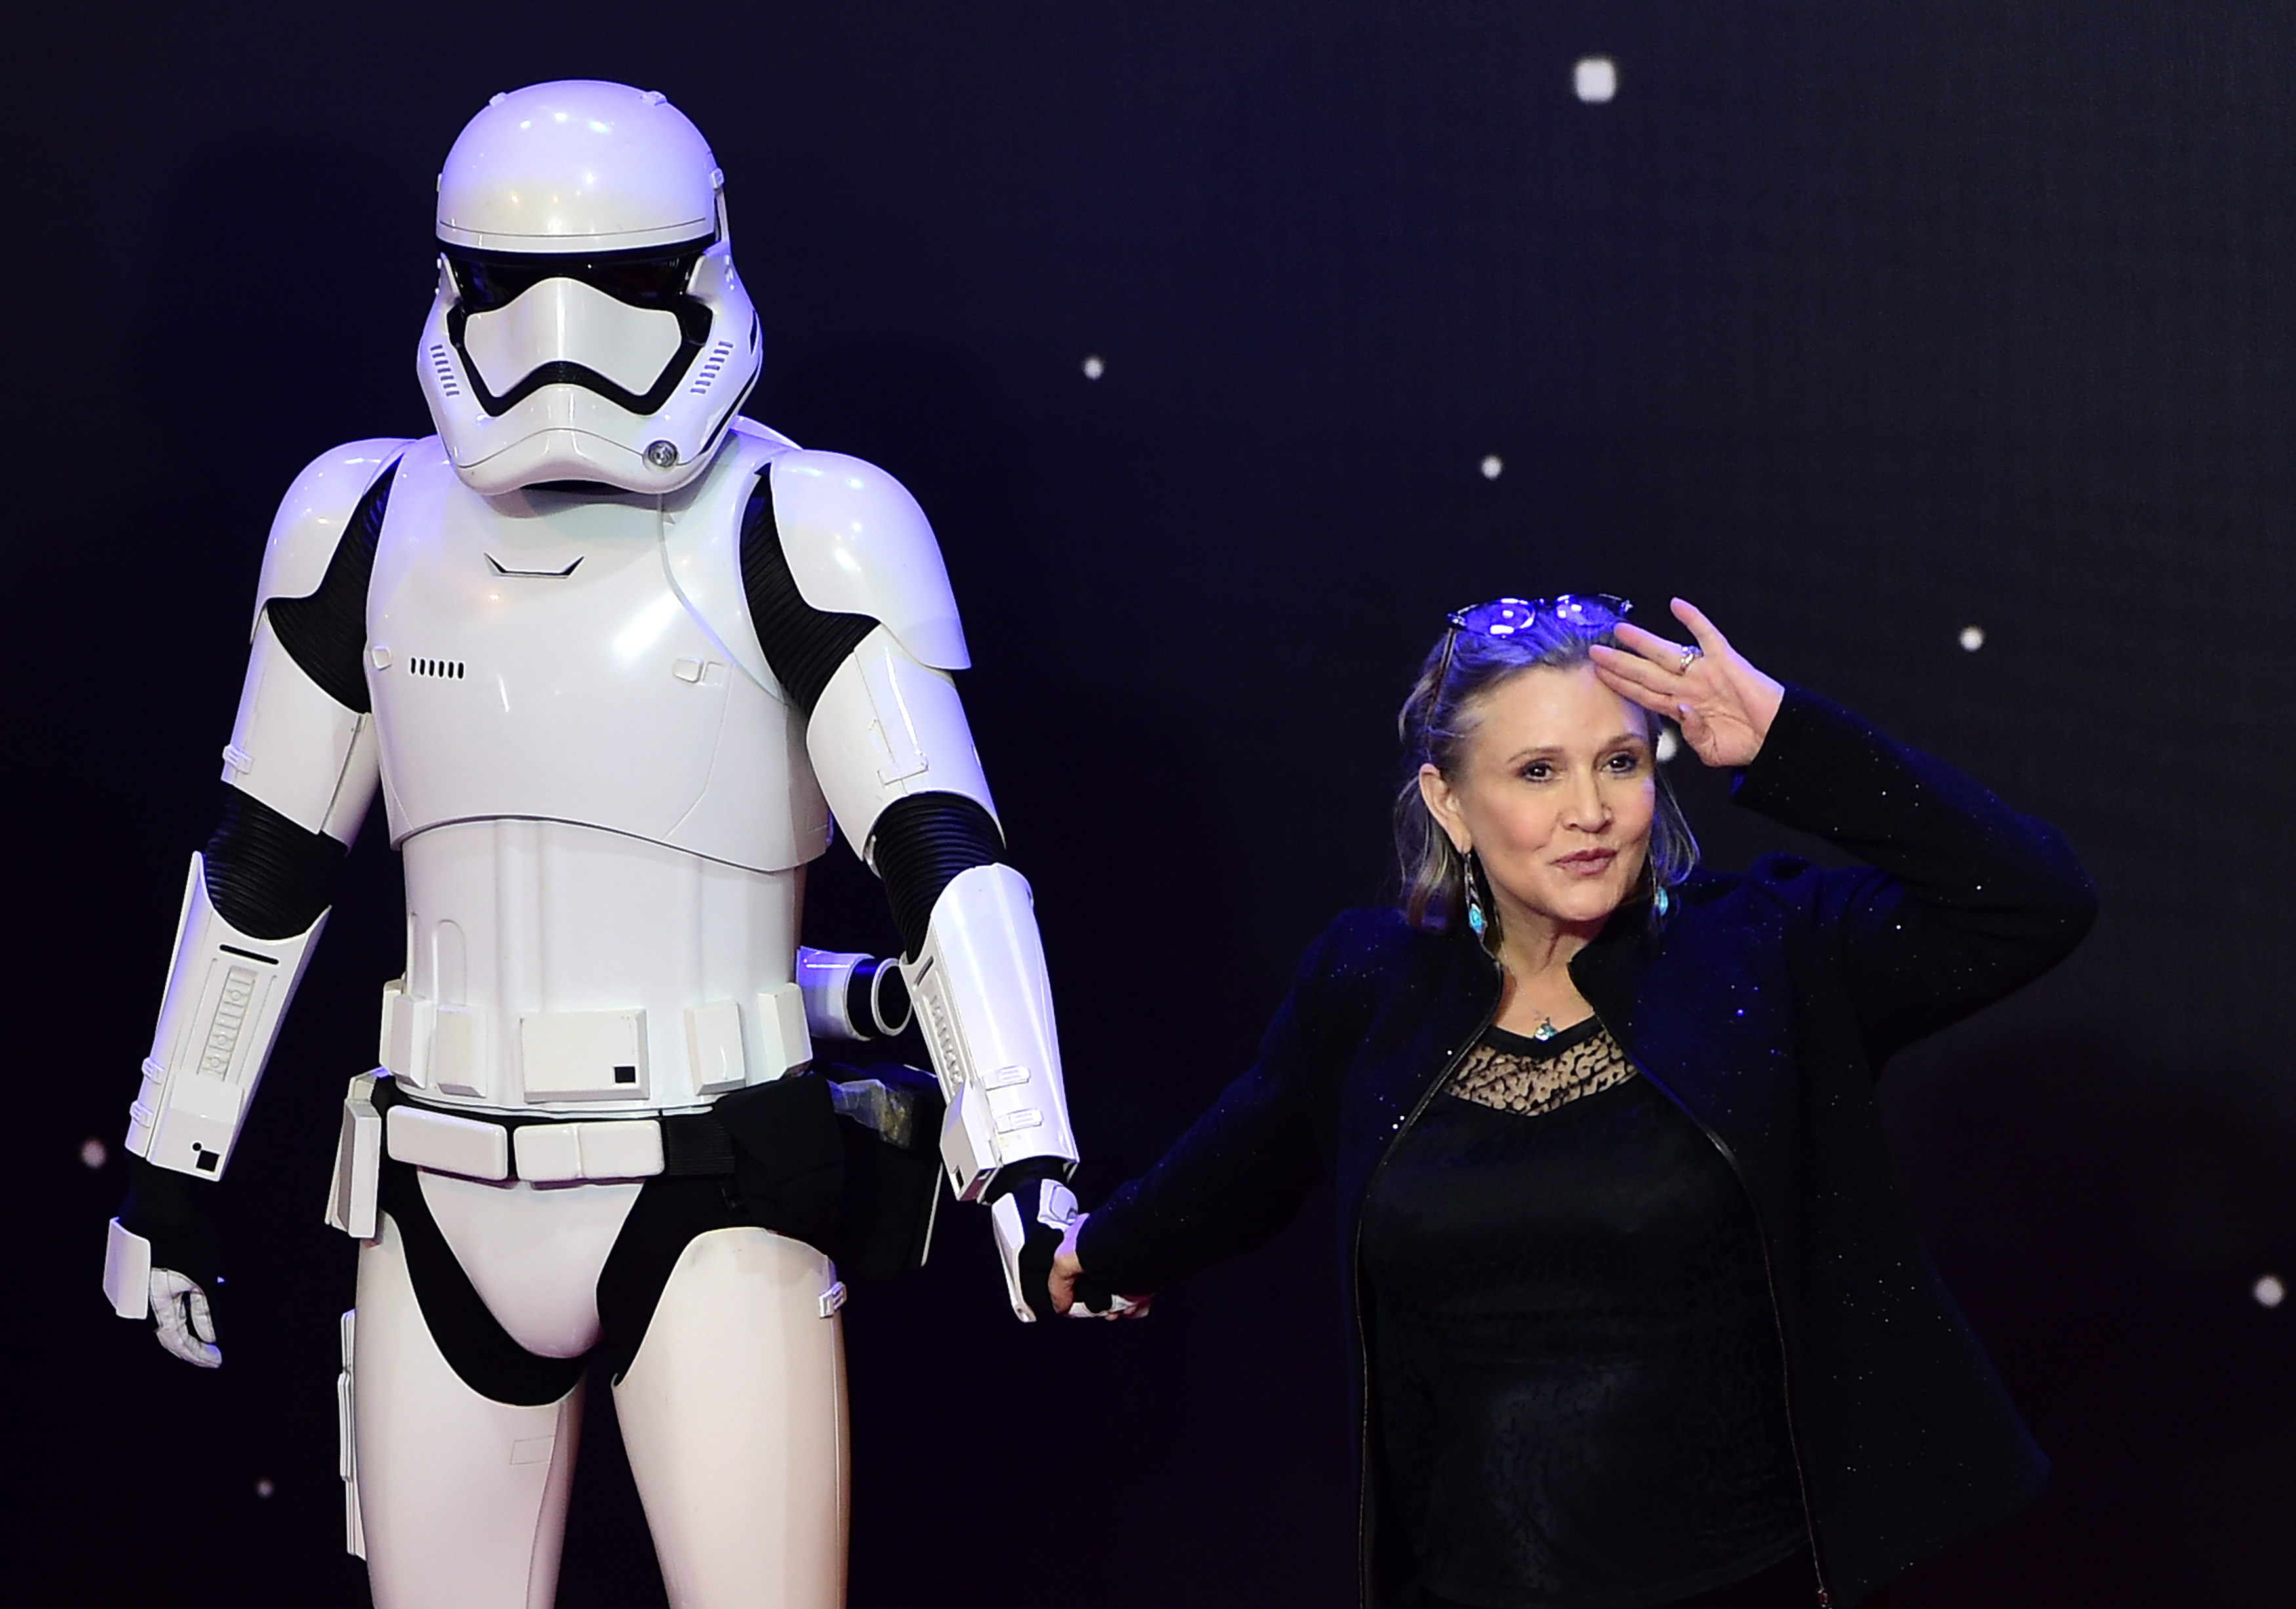 An astronaut just honored Carrie Fisher and women in space in the best way